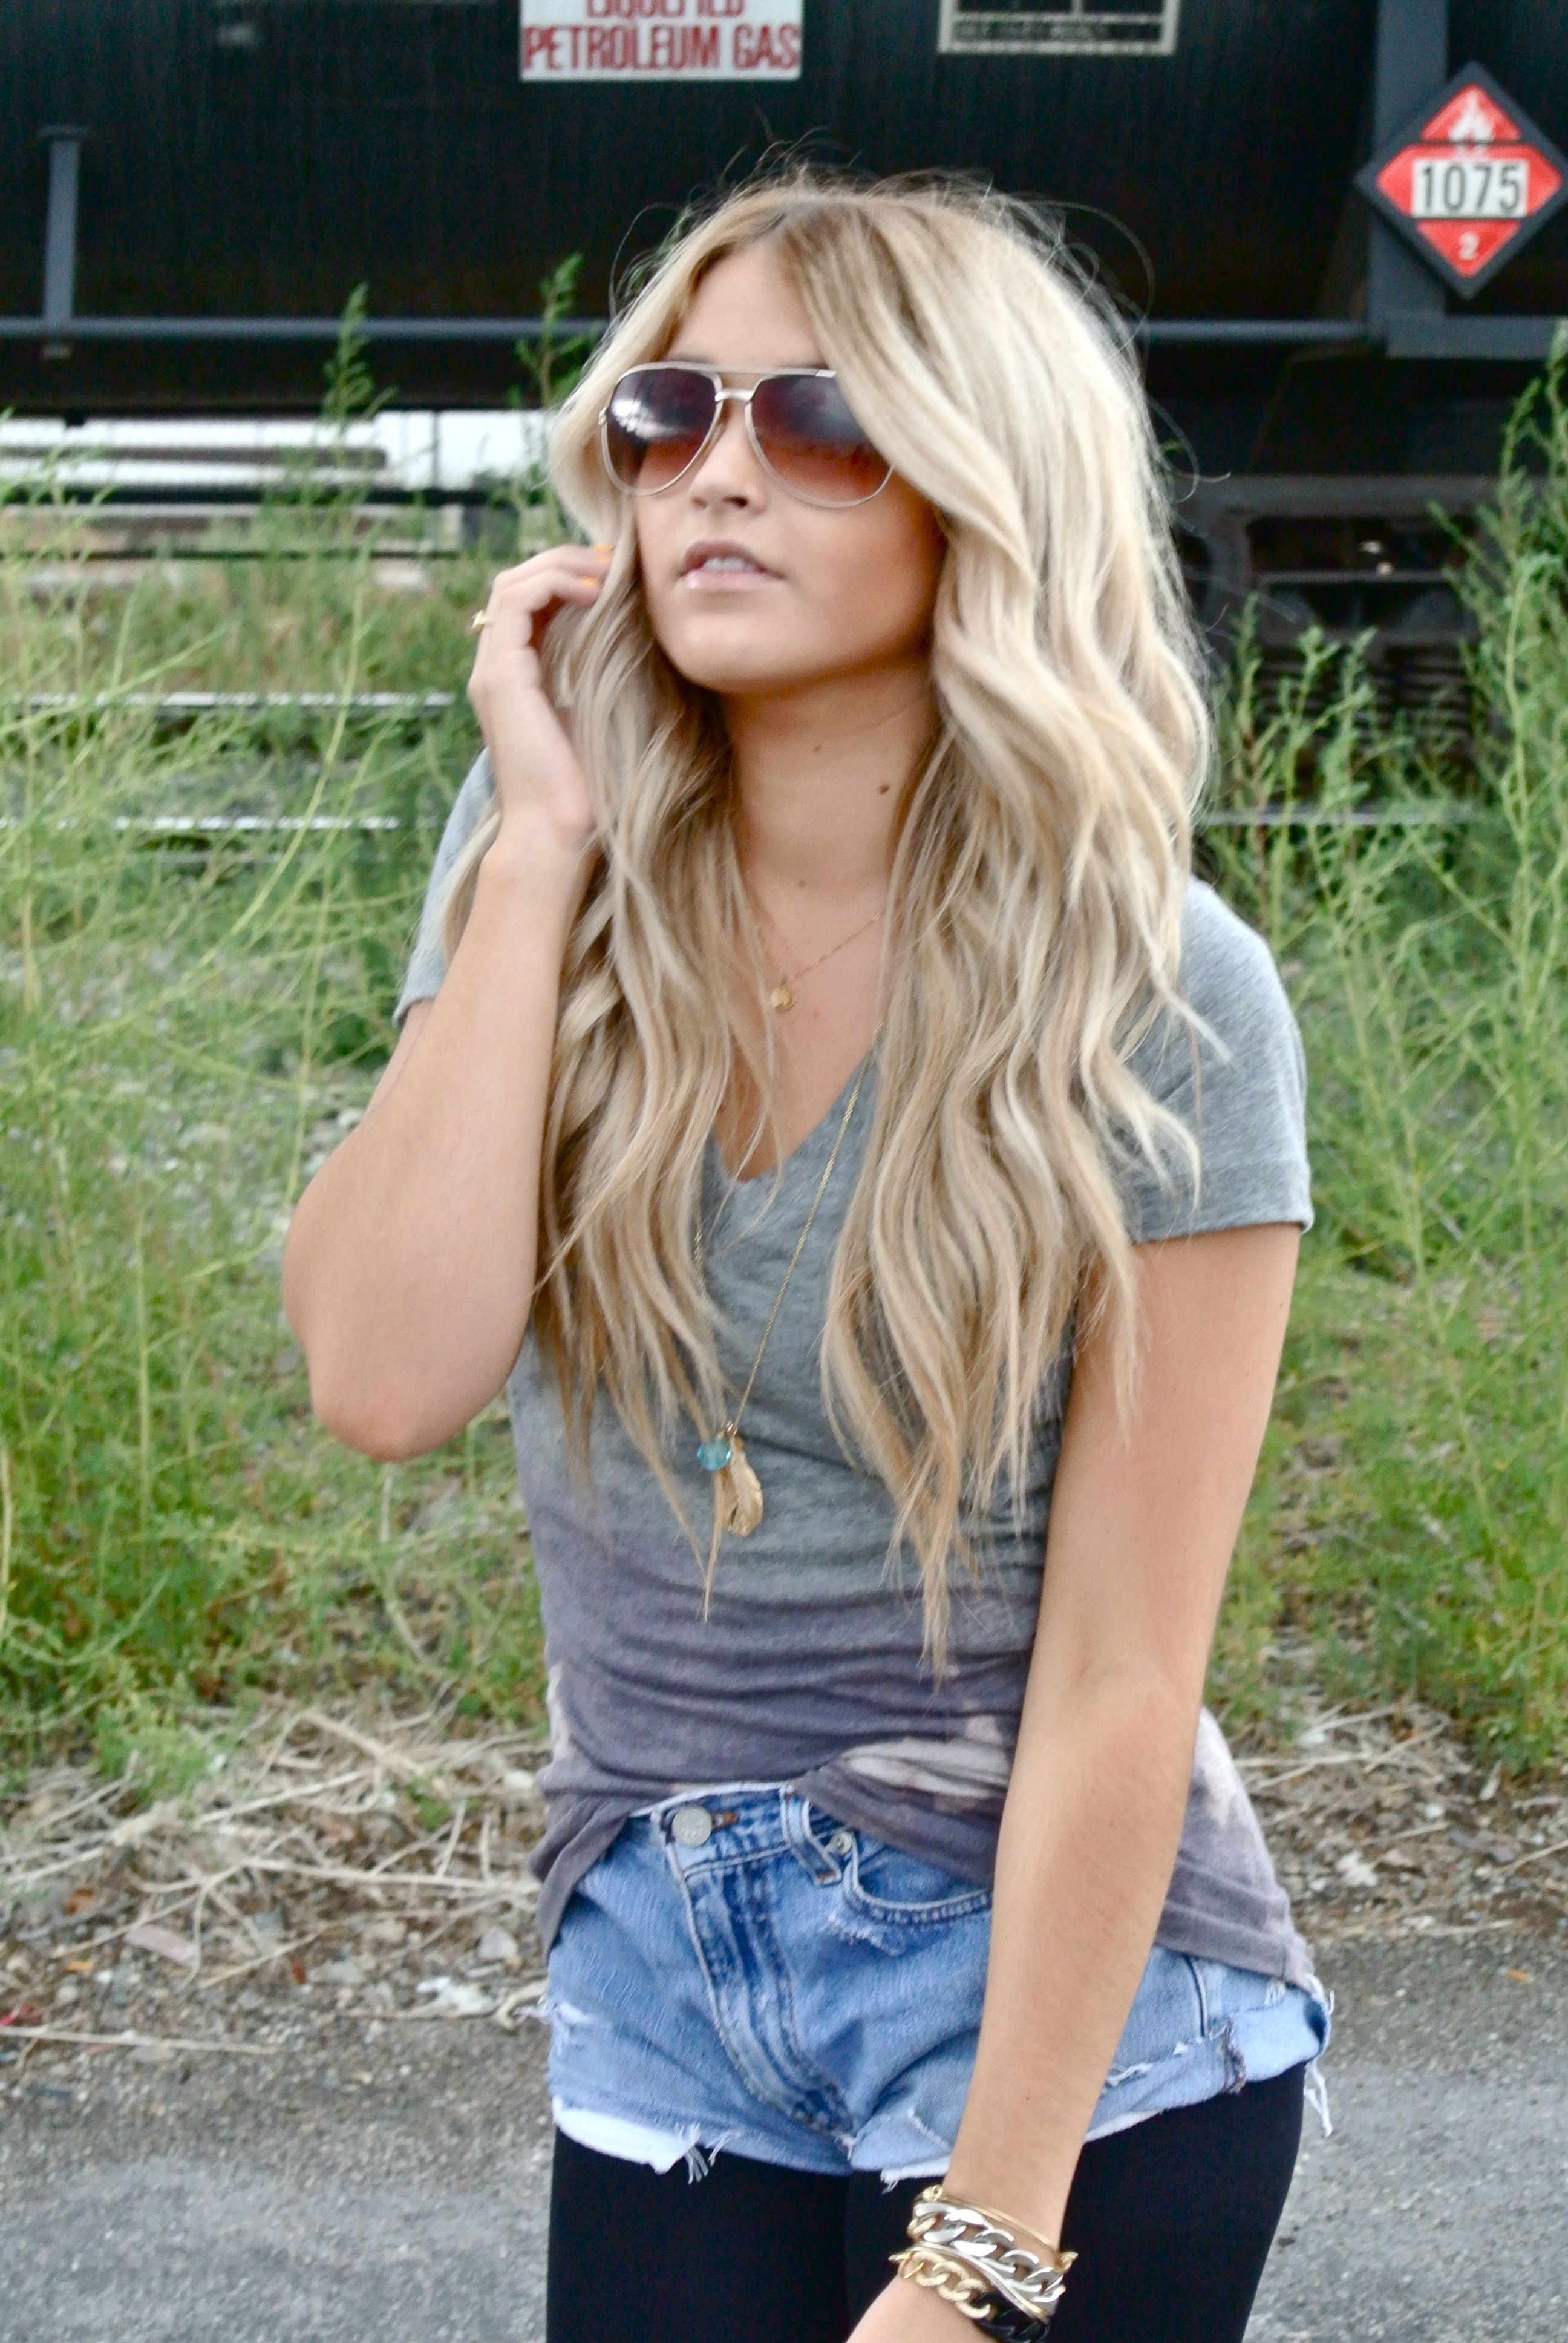 Cara Loren Always Has Adorable Hair Makeup And Most Of All Clothes